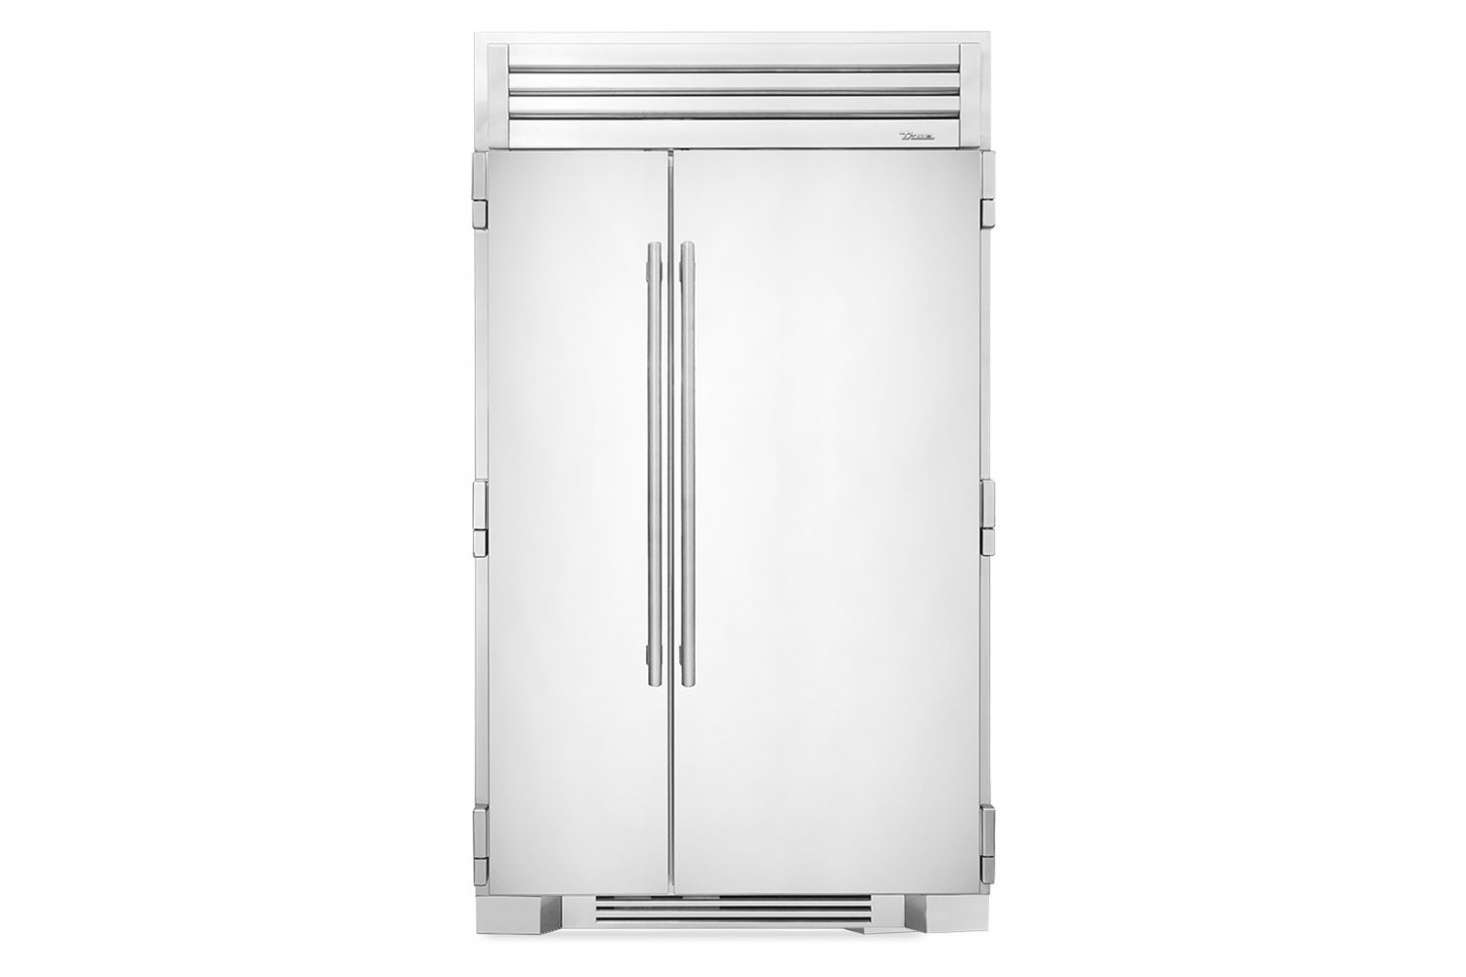 The Widest Model True Residential Full Size 48 Inch Refrigerator With Stainless Doors